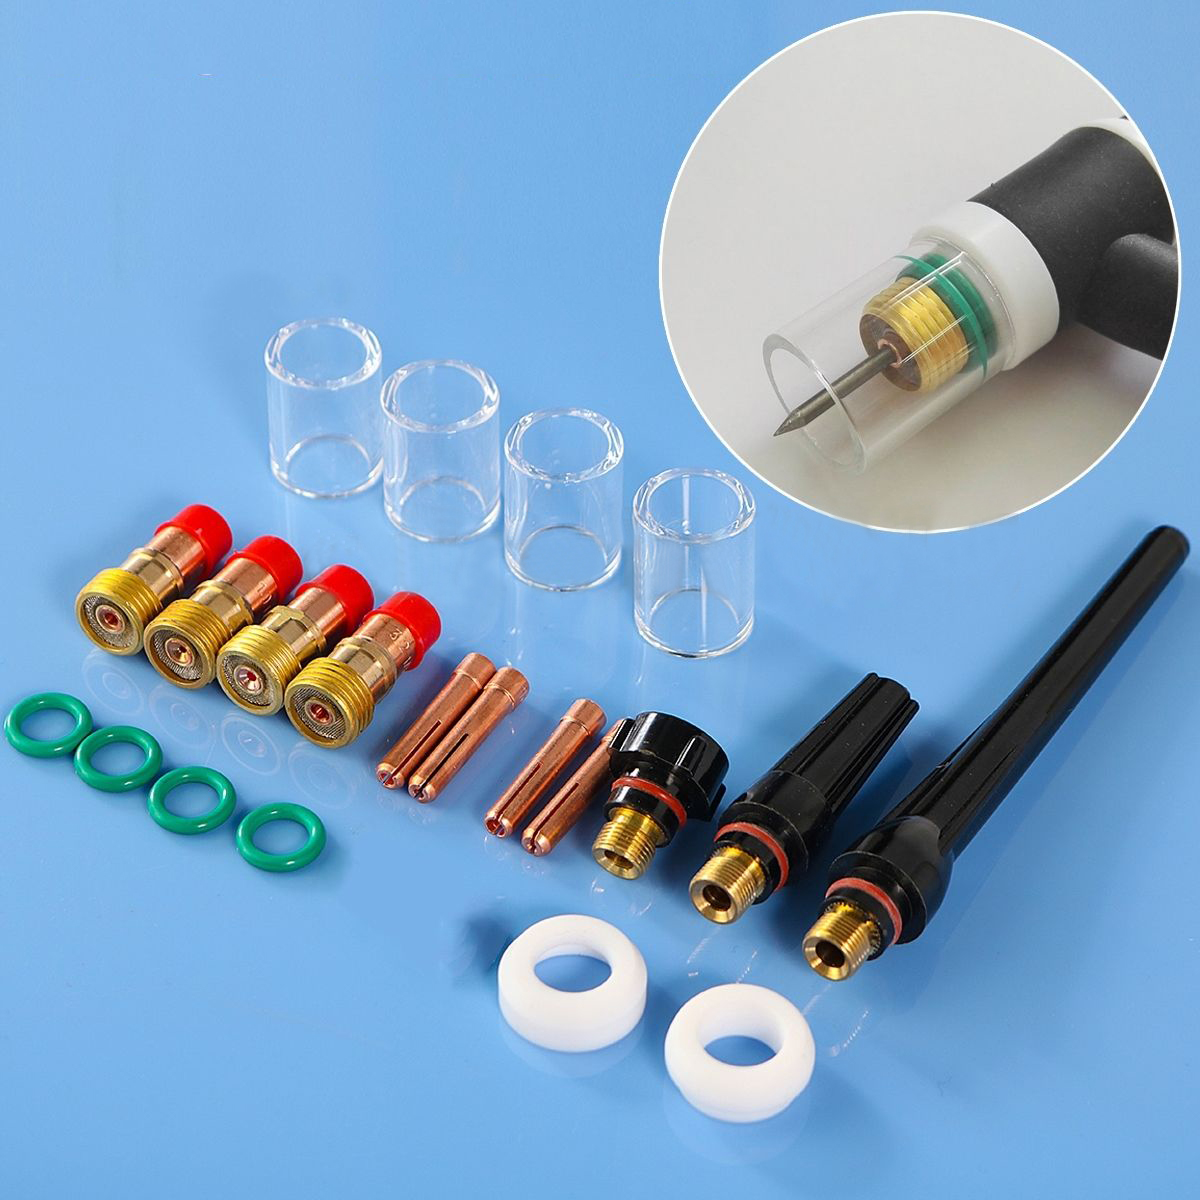 21pcs Mayitr TIG Welding Torch Kit Sollets Body Stubby Gas Lens #10 Pyrex Cup for WP-17/18/26 Torch Consumables Accessories wp 17f sr 17f tig welding torch complete 20feet 6meter soldering iron flexible